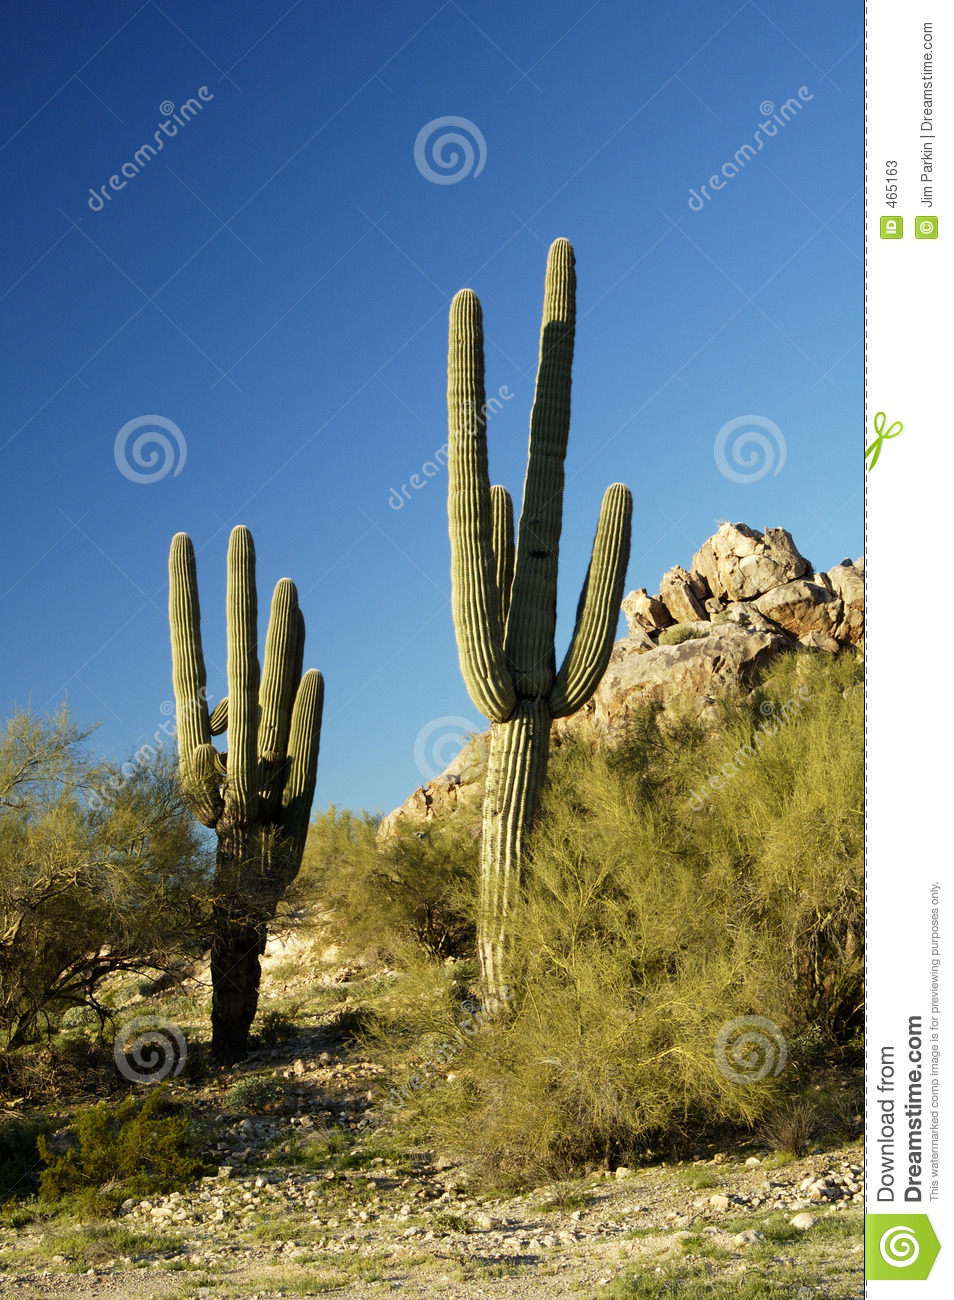 Download Saguaro Cactus 3 stock image. Image of nature, states, large - 465163